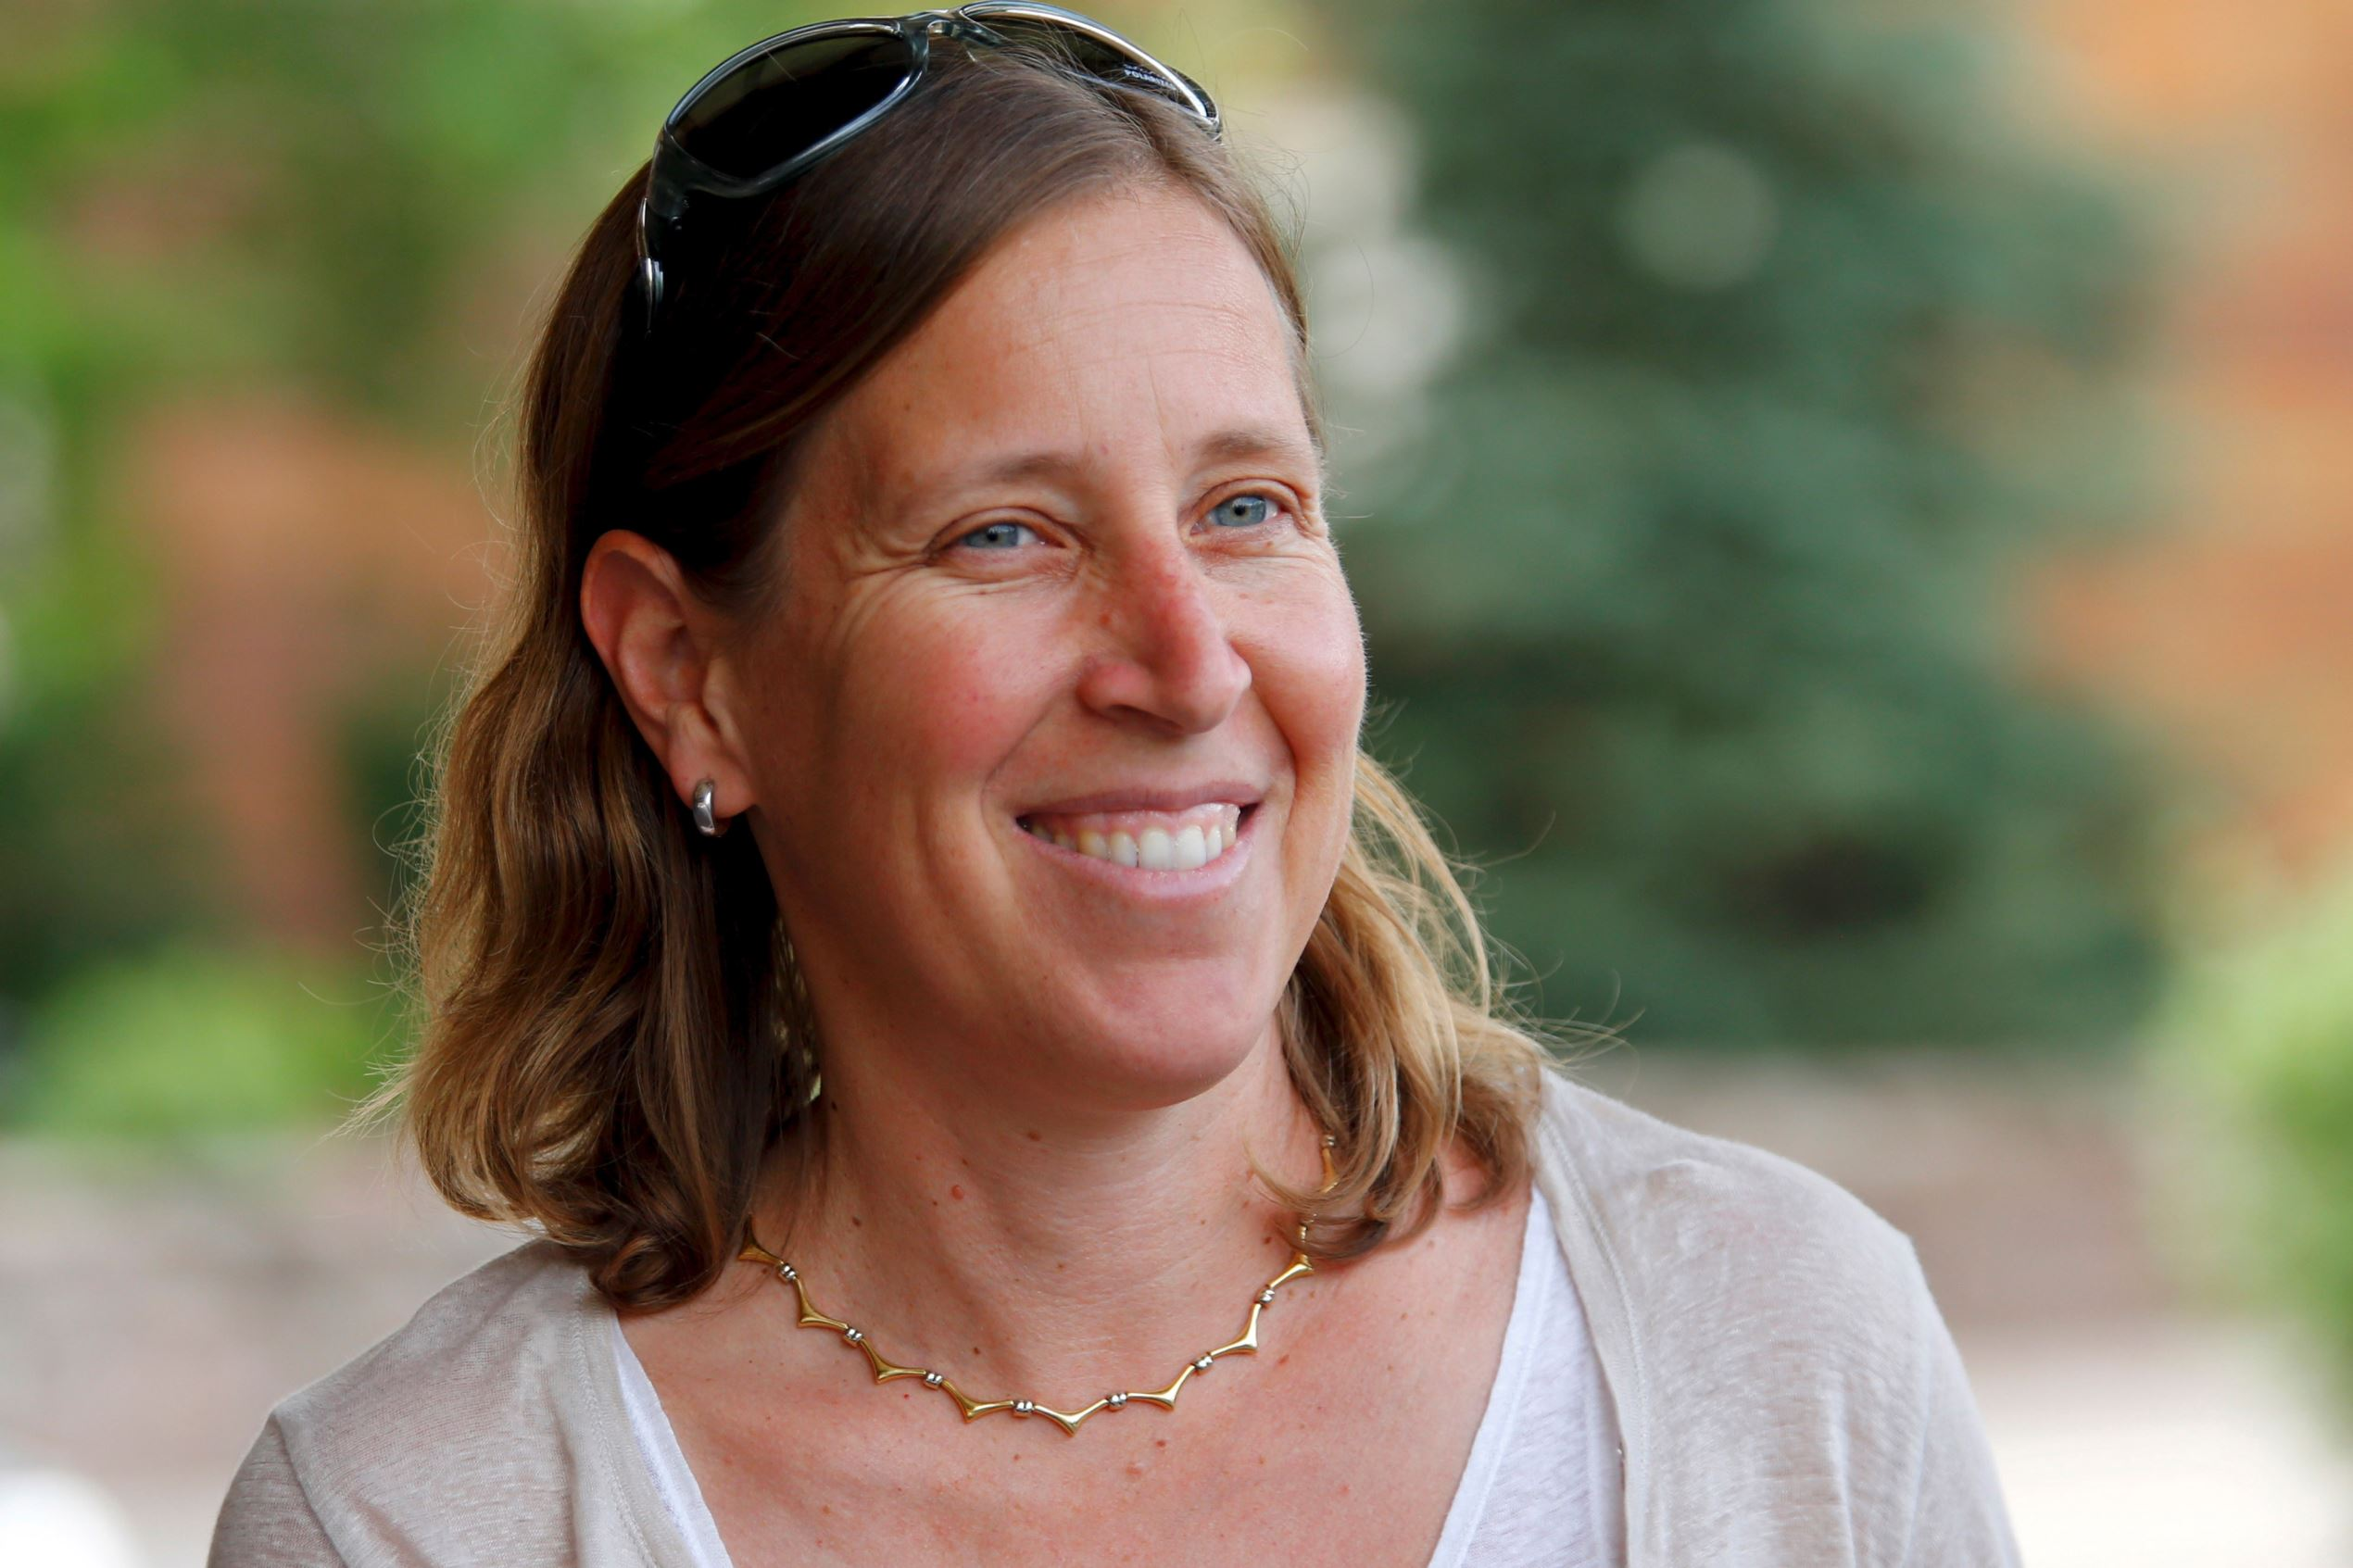 YouTube CEO Susan Wojcicki arrives for the annual Allen and Co. media conference Sun Valley, Idaho on July 7.